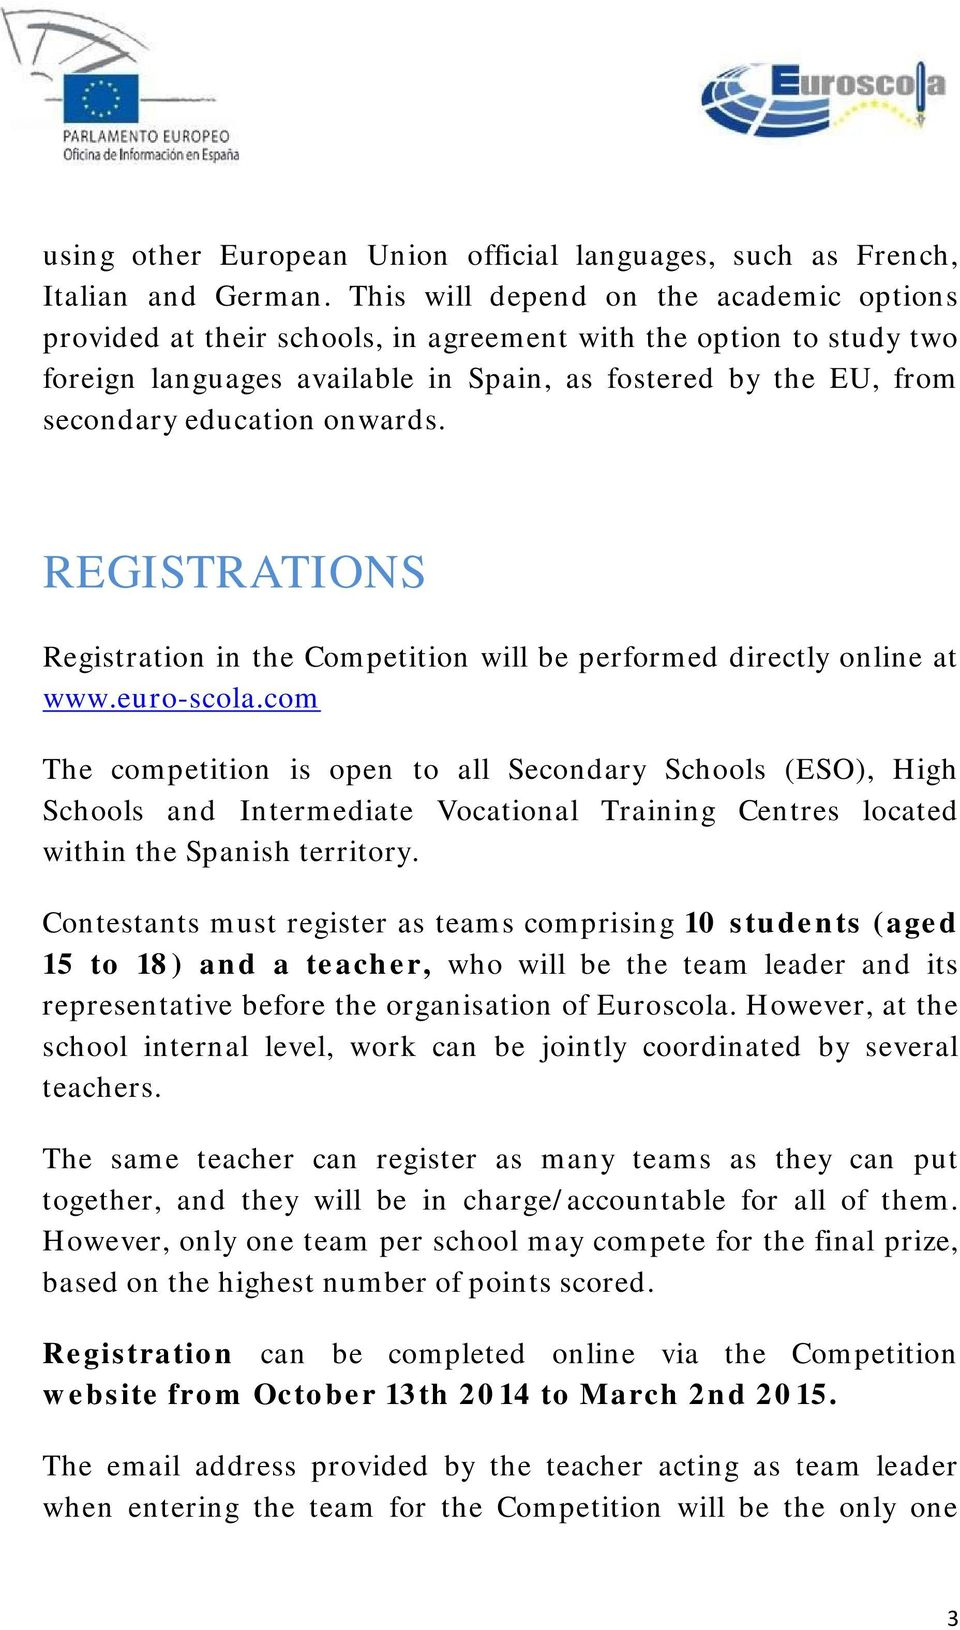 onwards. REGISTRATIONS Registration in the Competition will be performed directly online at www.euro-scola.